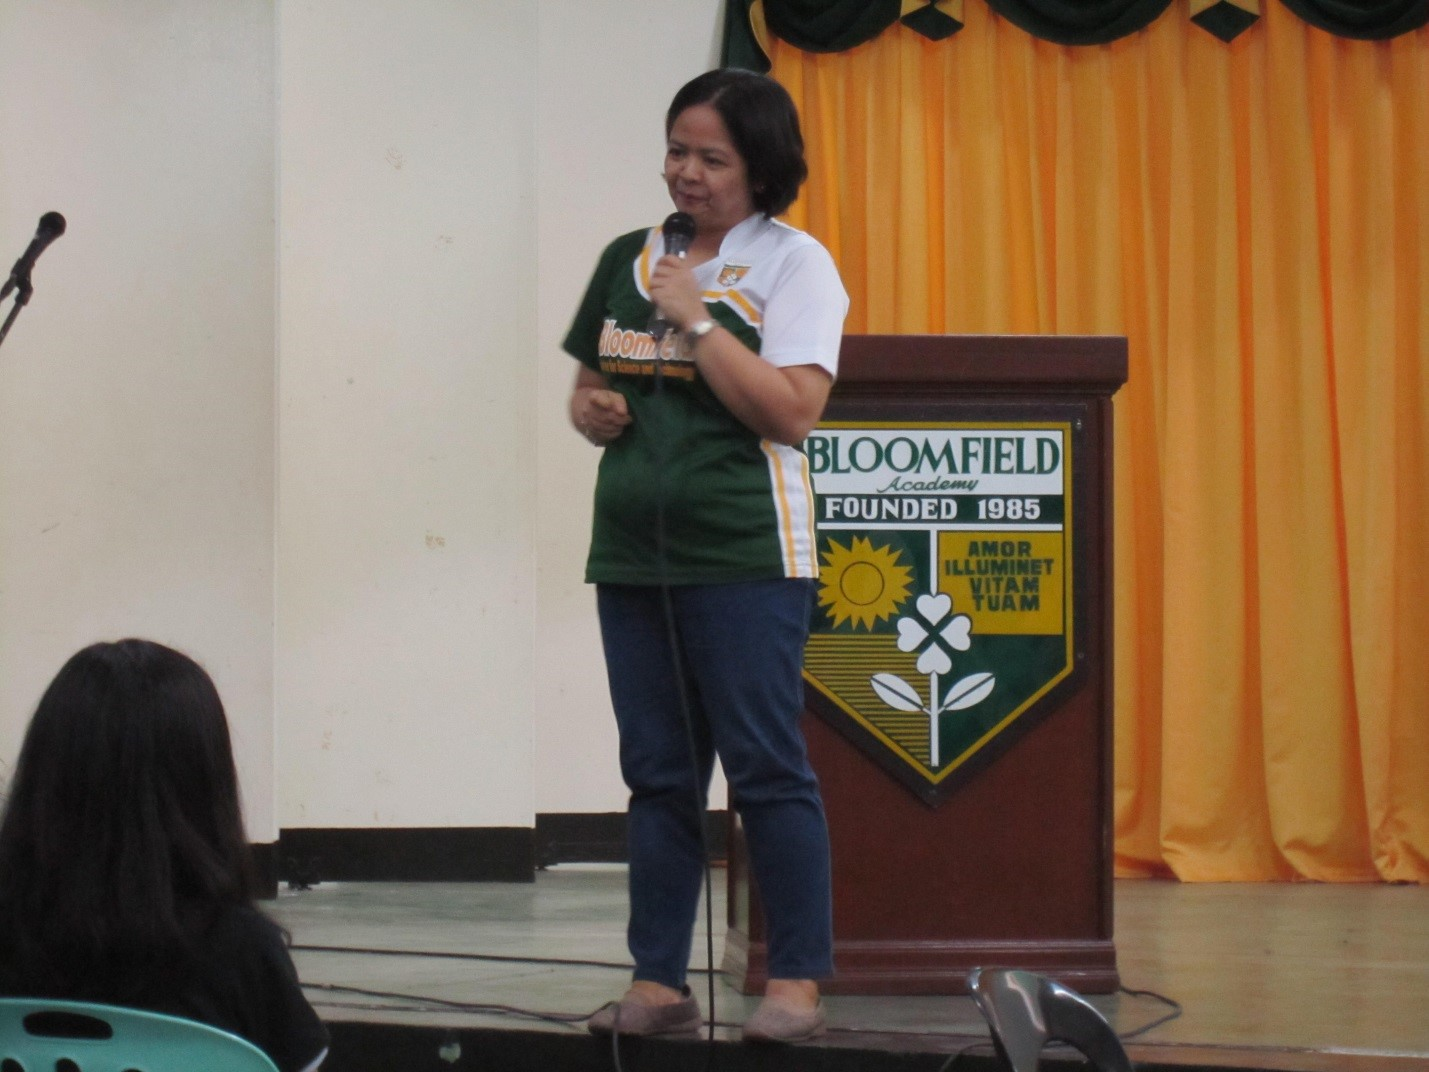 Ms. Gina Villaflor's talk focused on the programs that Guidance offers. She also emphasized that she is a guidance counselor who is always willing to help and reach out to every student.